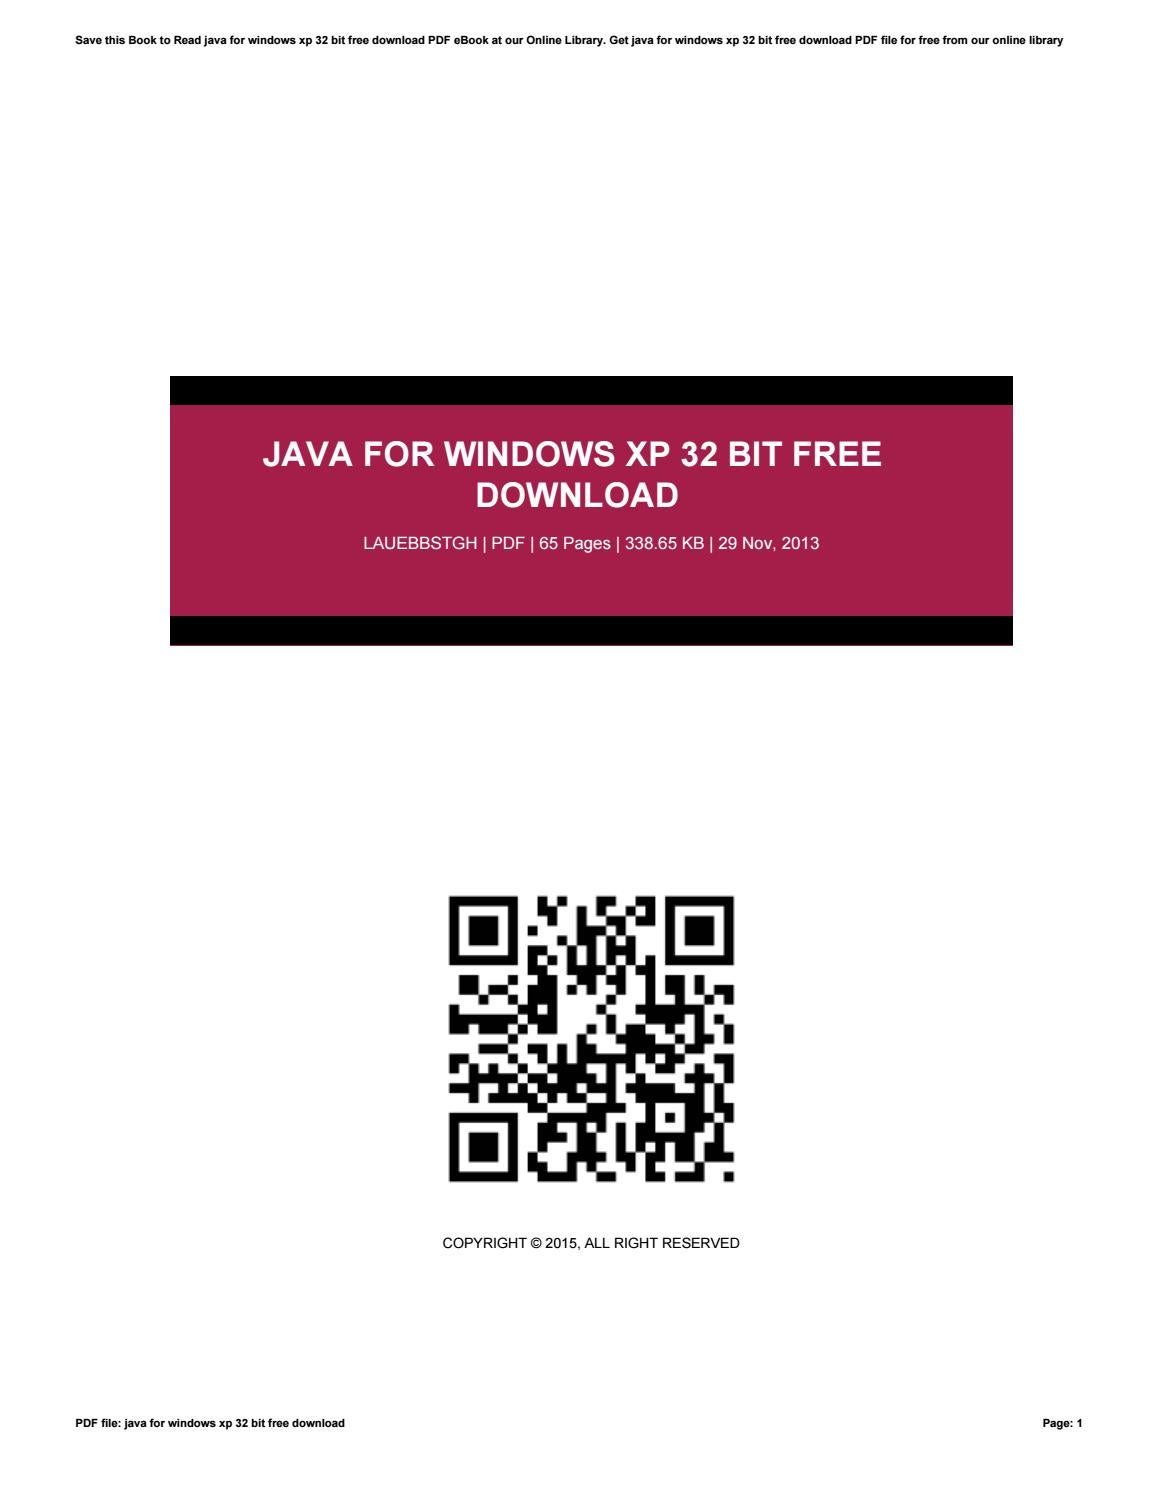 How to install java jdk 8 on windows xp youtube.